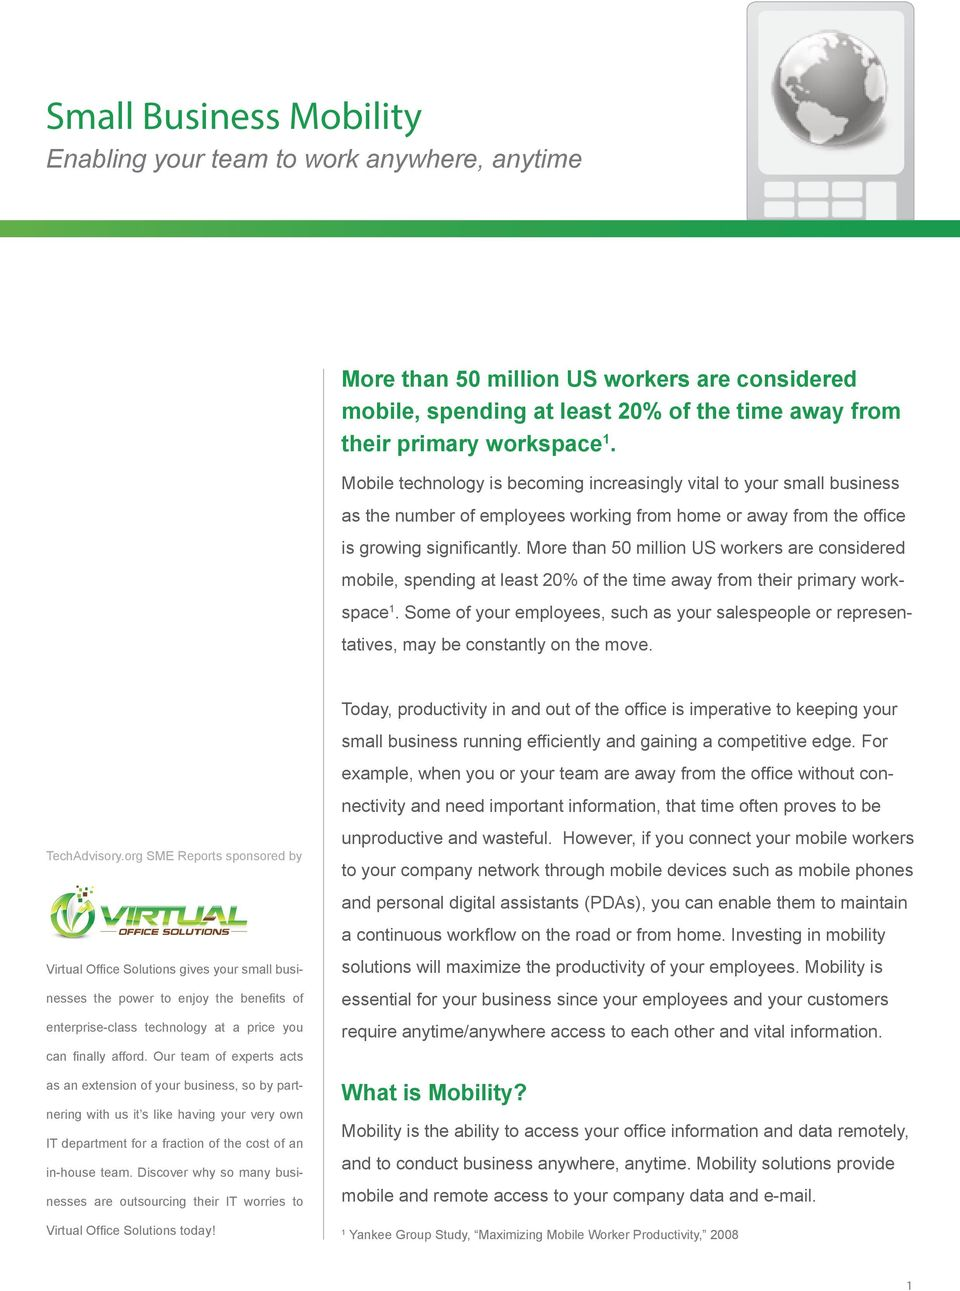 More than 50 million US workers are considered mobile, spending at least 20% of the time away from their primary workspace 1.